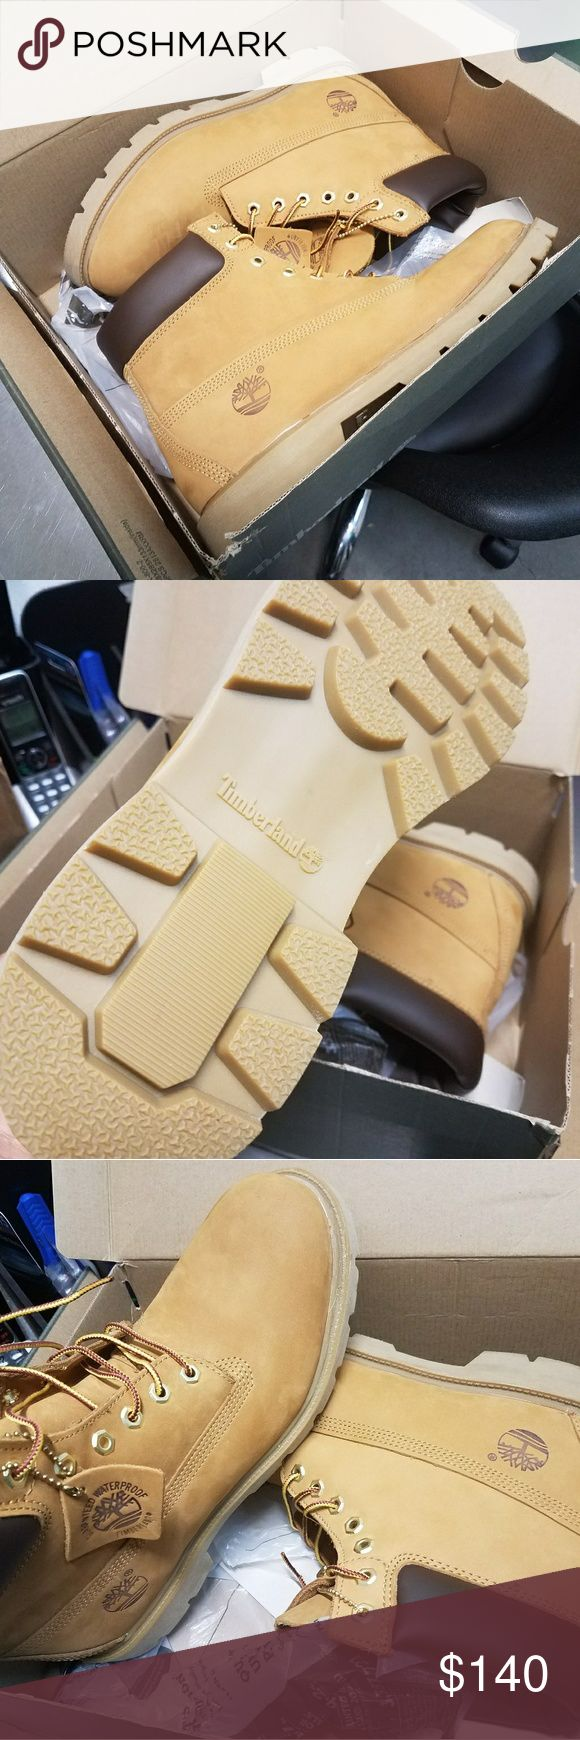 Brand new men timberlands!! Brand new men's timberlands size 11 never worn  with box Timberland Shoes Boots